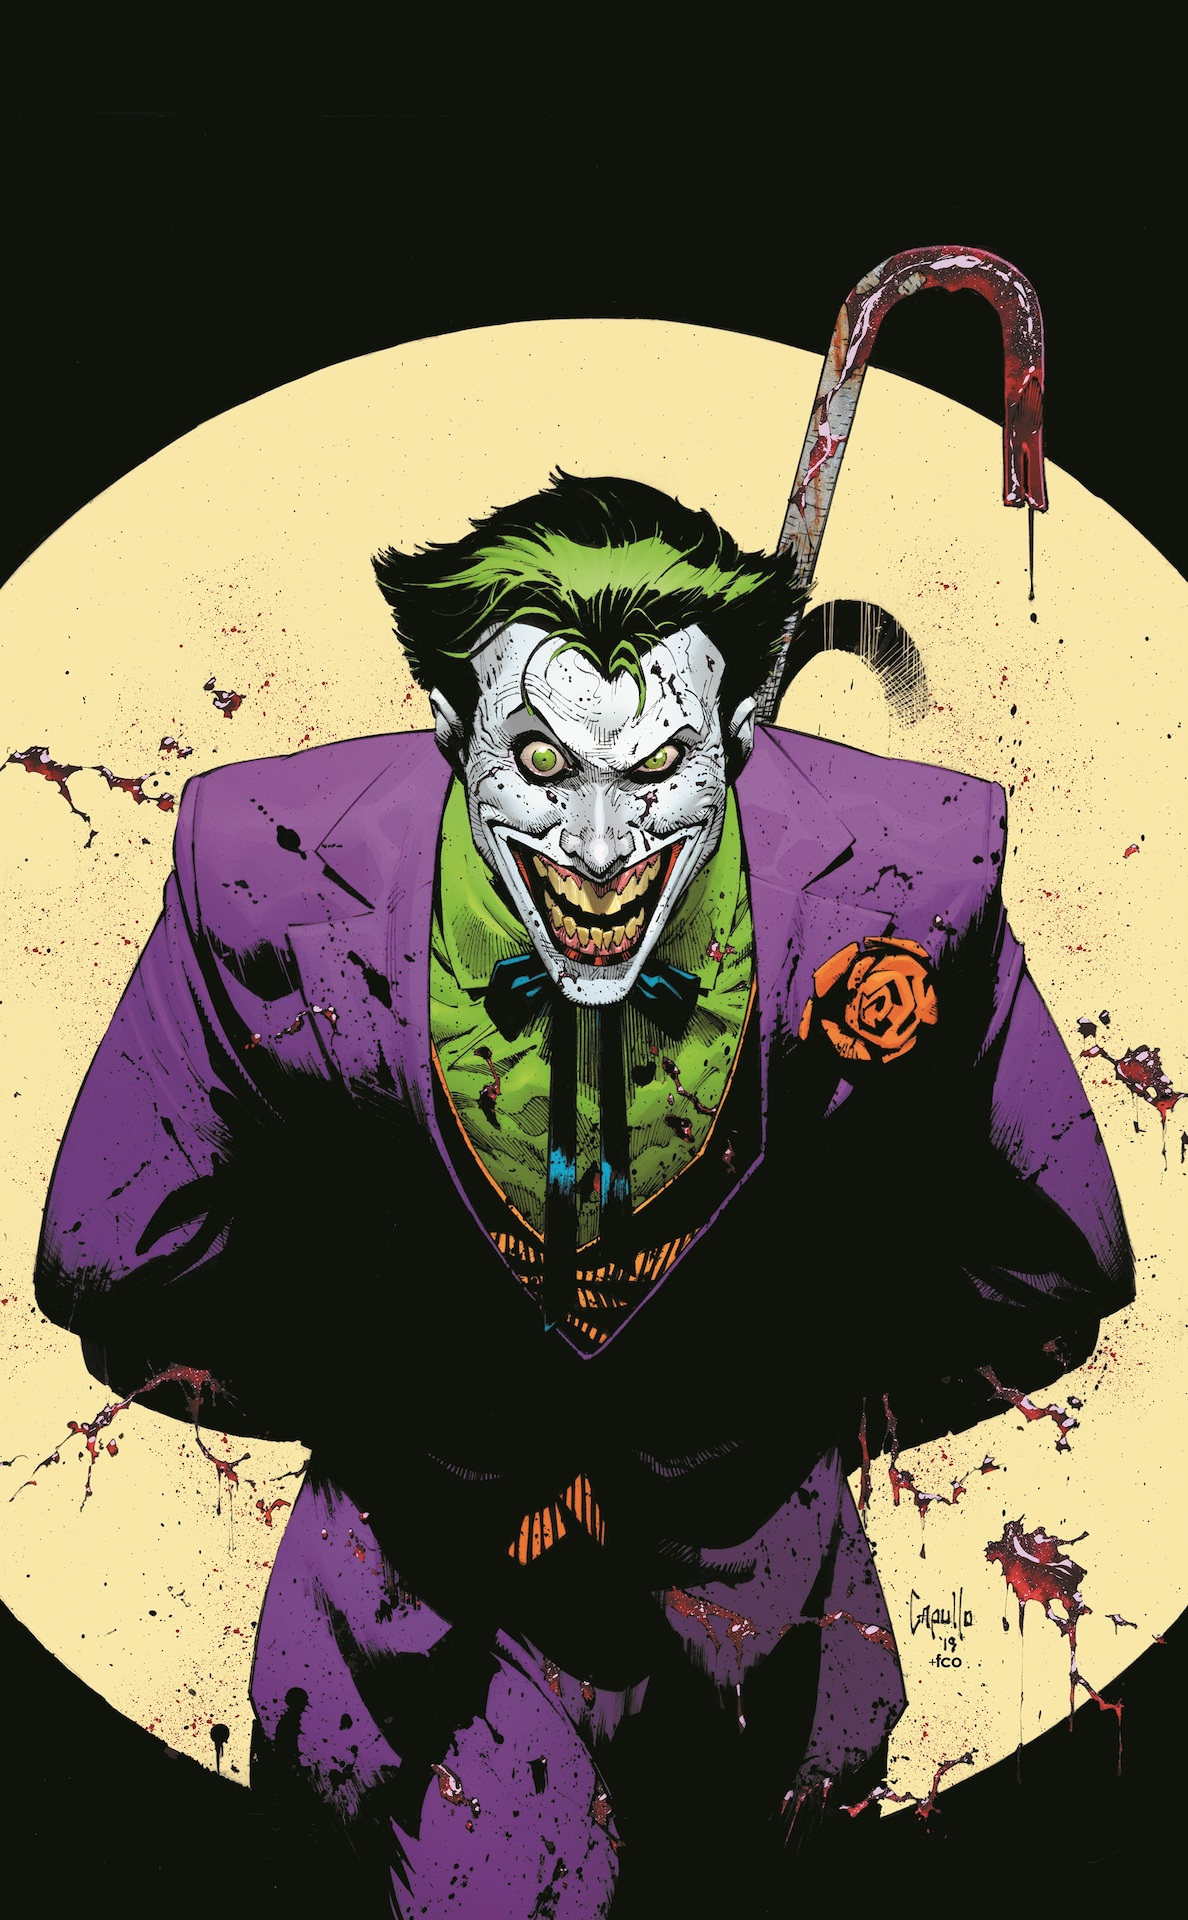 DC Comics cover reveal: Joker 80th Anniversary 100-page Super Spectacular variant covers revealed